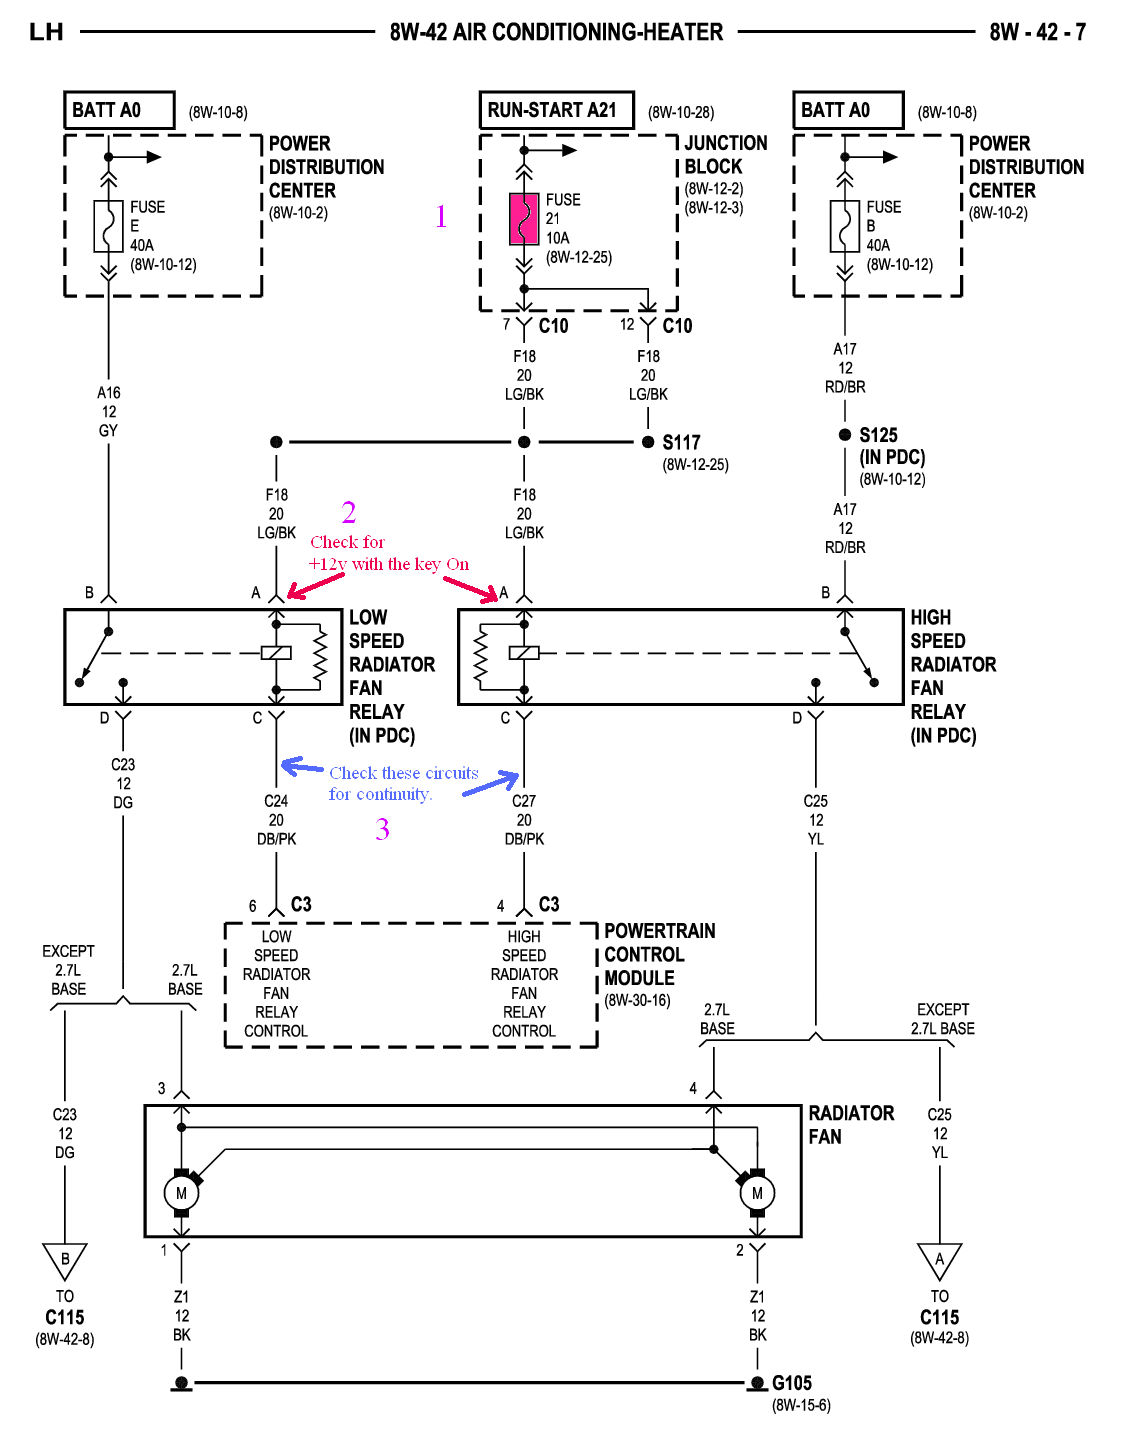 2005 chrysler sebring manual wiring diagram image details wire rh linxglobal co 2002 pt cruiser ignition wiring diagram 2002 pt cruiser stereo wiring diagram